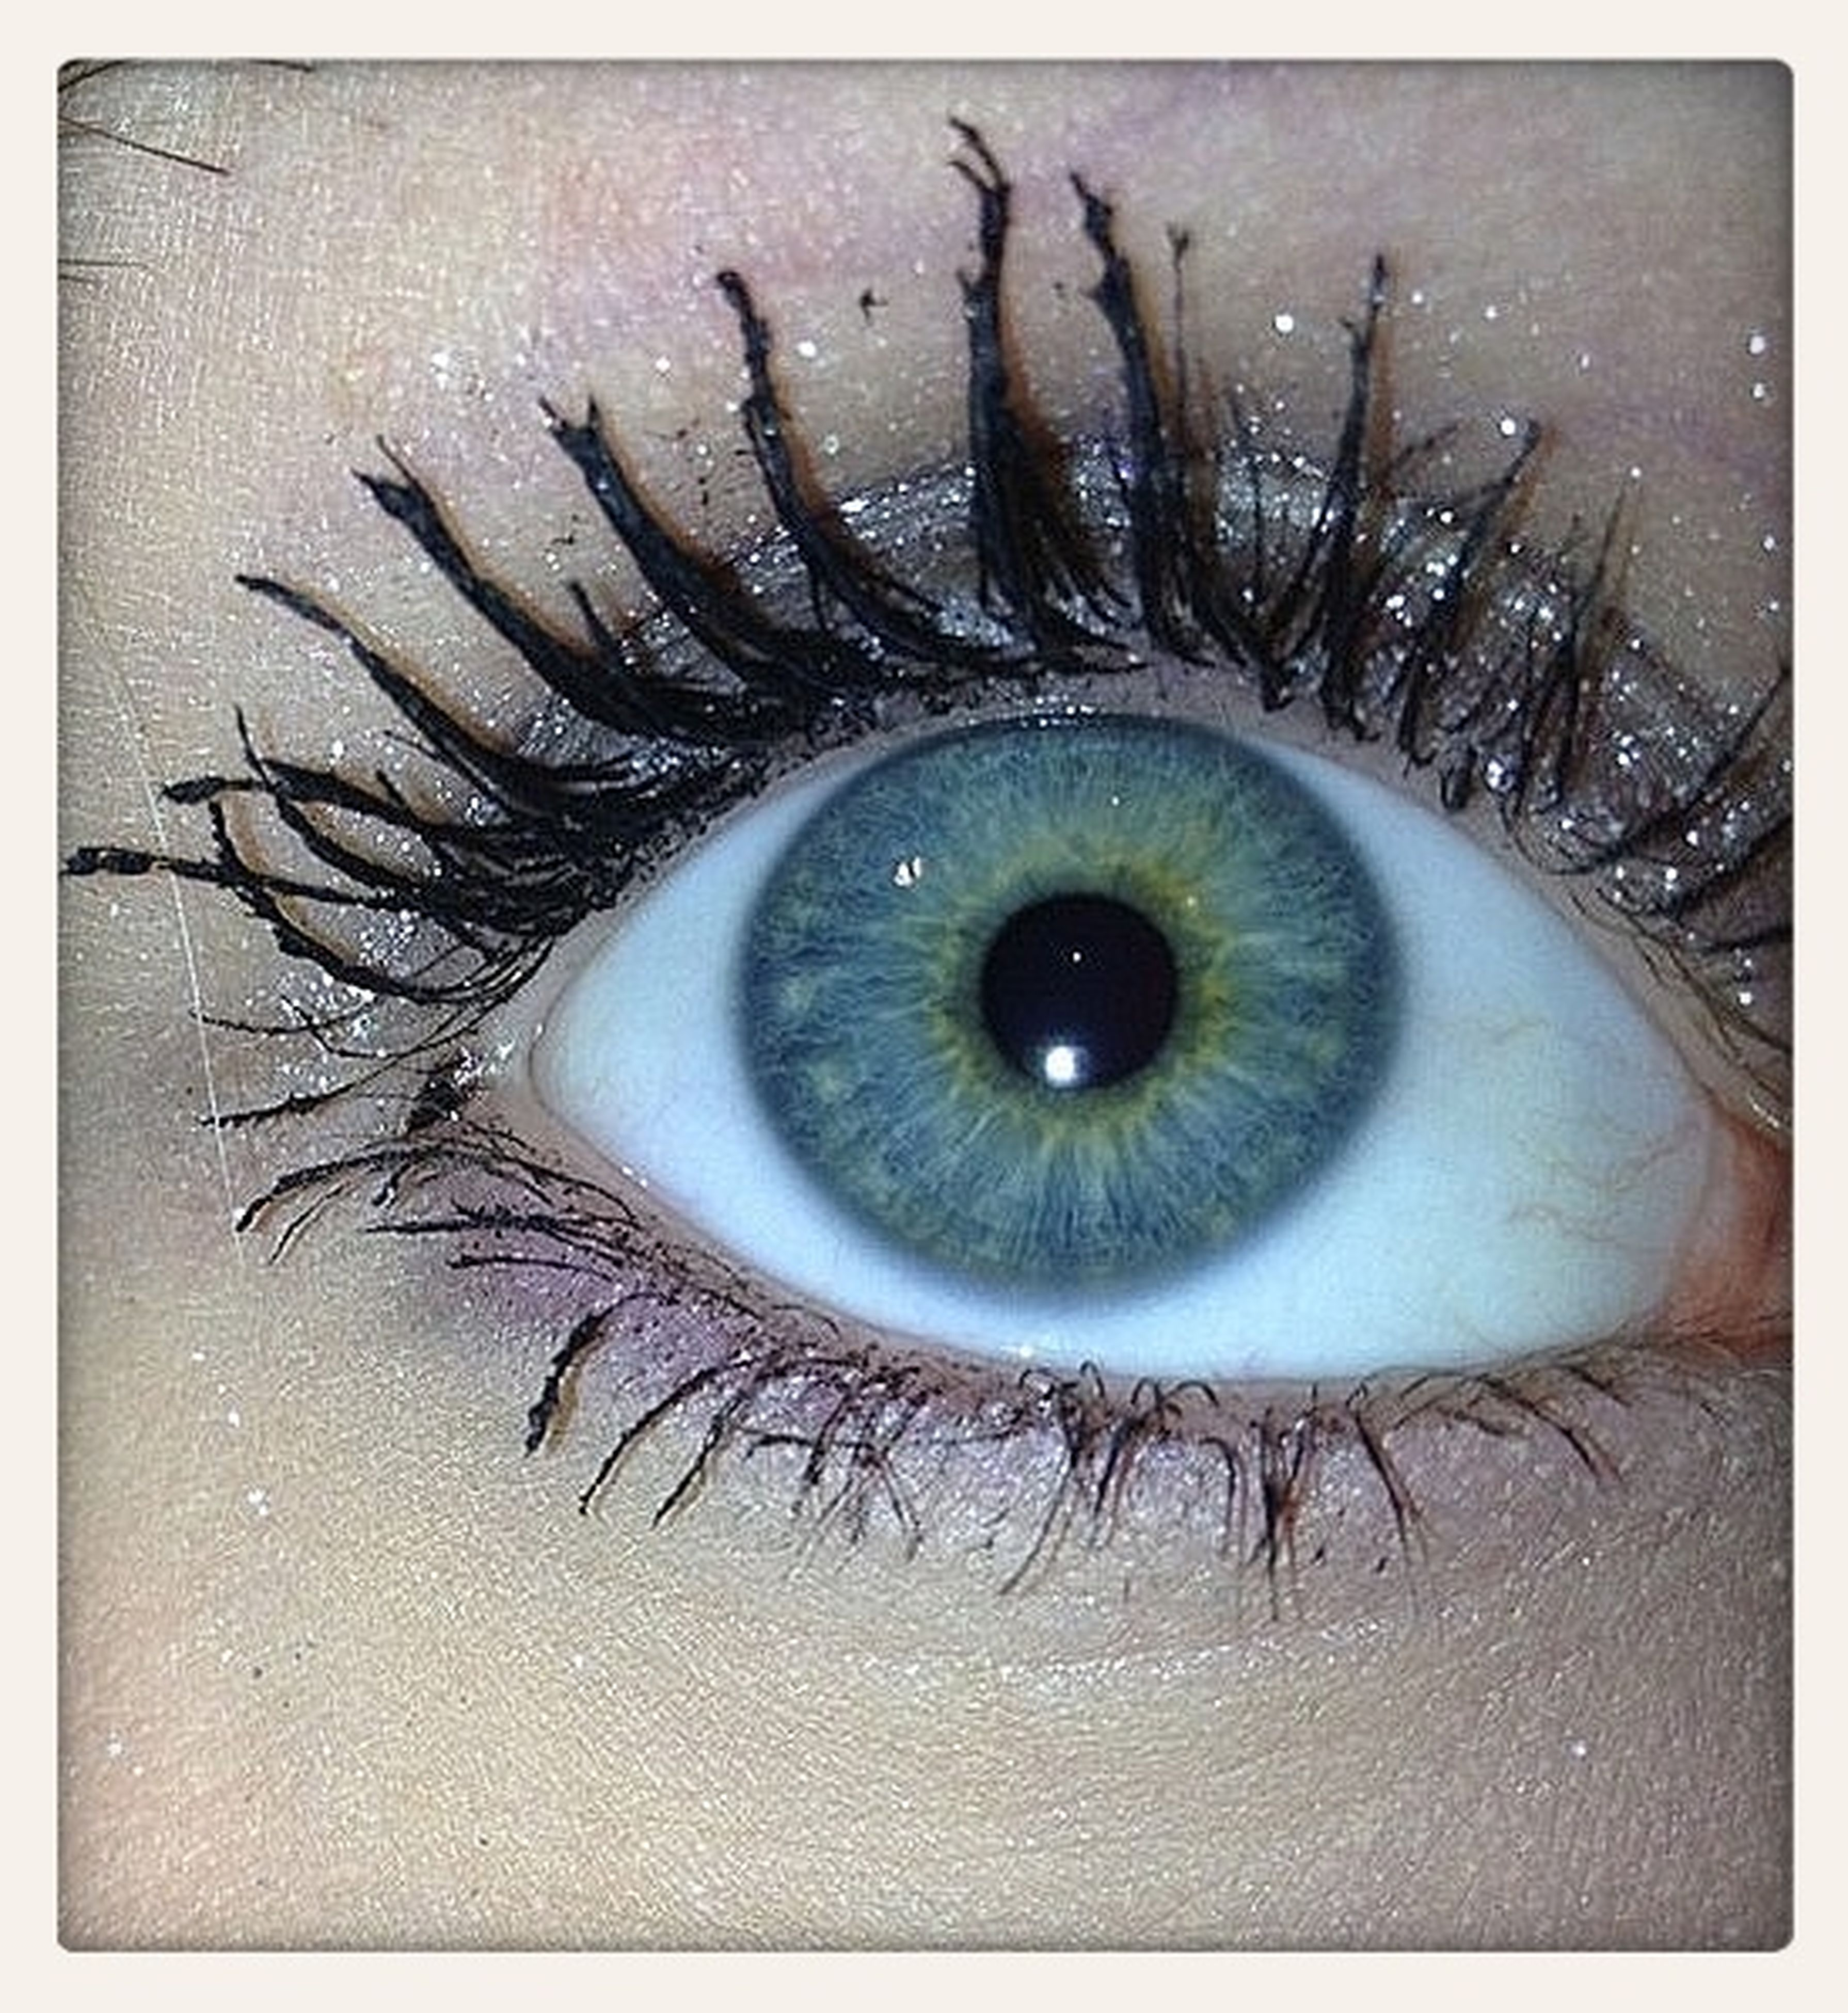 transfer print, auto post production filter, close-up, human eye, sensory perception, eyelash, indoors, eyesight, circle, extreme close-up, single object, high angle view, directly above, portrait, looking at camera, part of, one person, full frame, eyeball